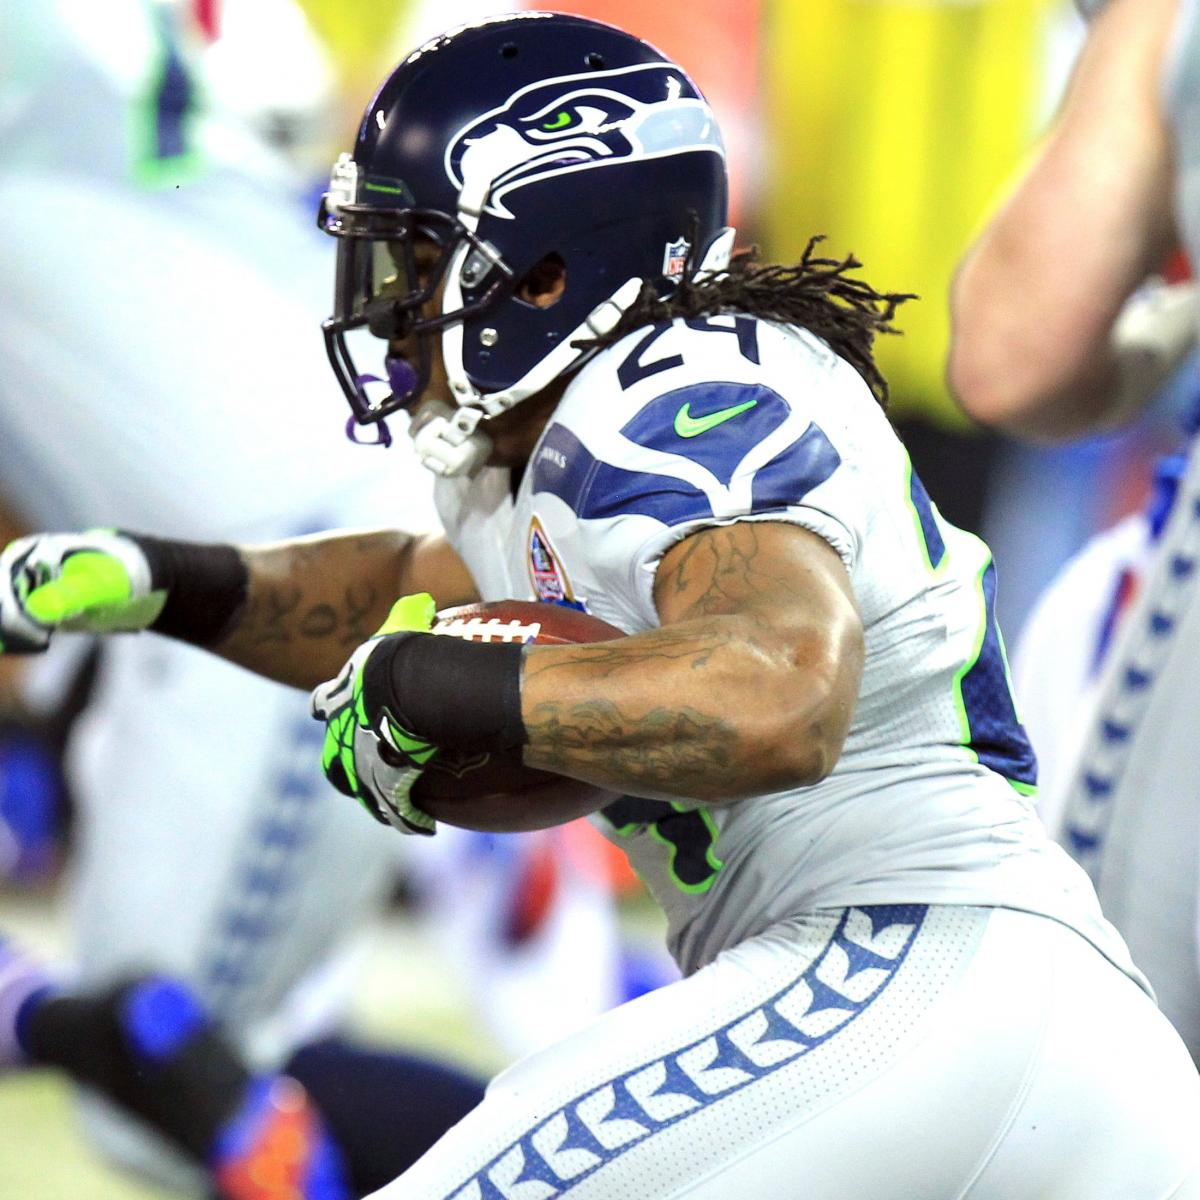 Seattle Seahawks Vs Buffalo Bills Live Score Highlights And Analysis Bleacher Report Latest News Videos And Highlights